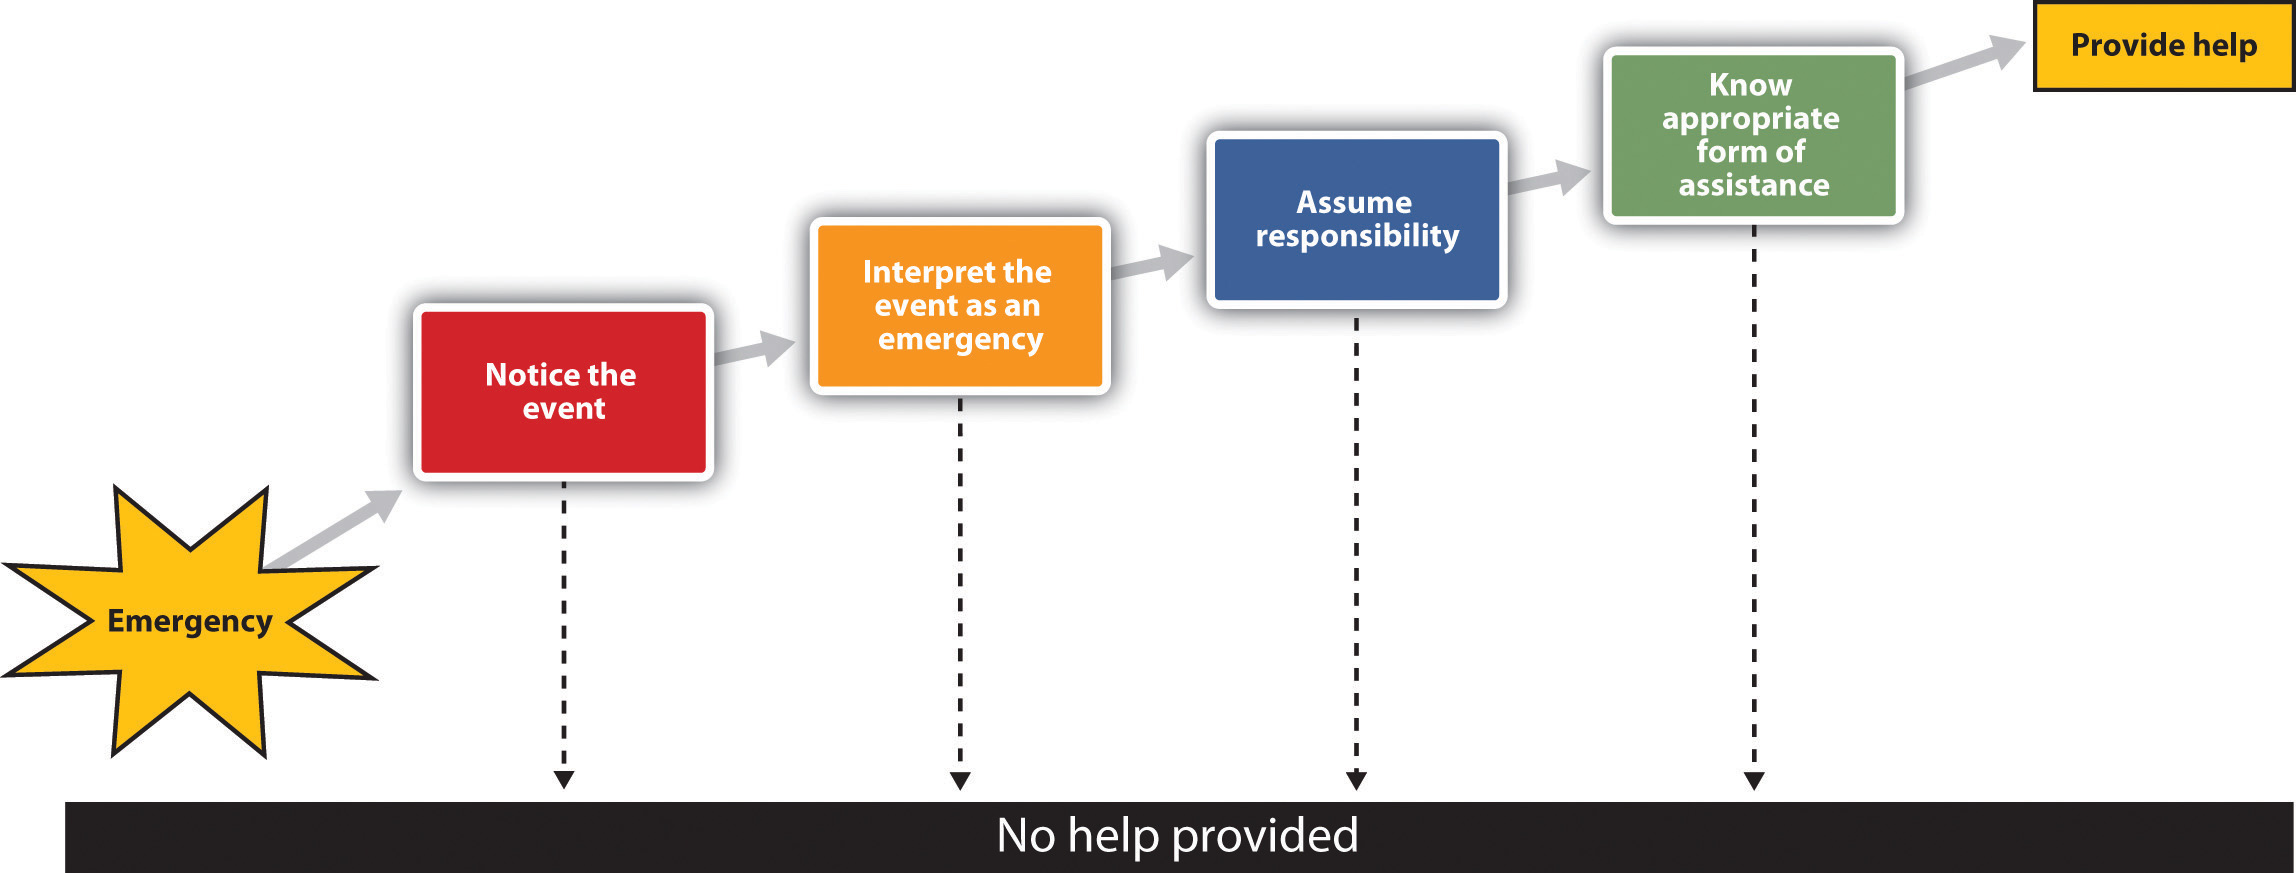 The Latané and Darley model of helping is based on the idea that a variety of situational factors can influence whether or not we help.